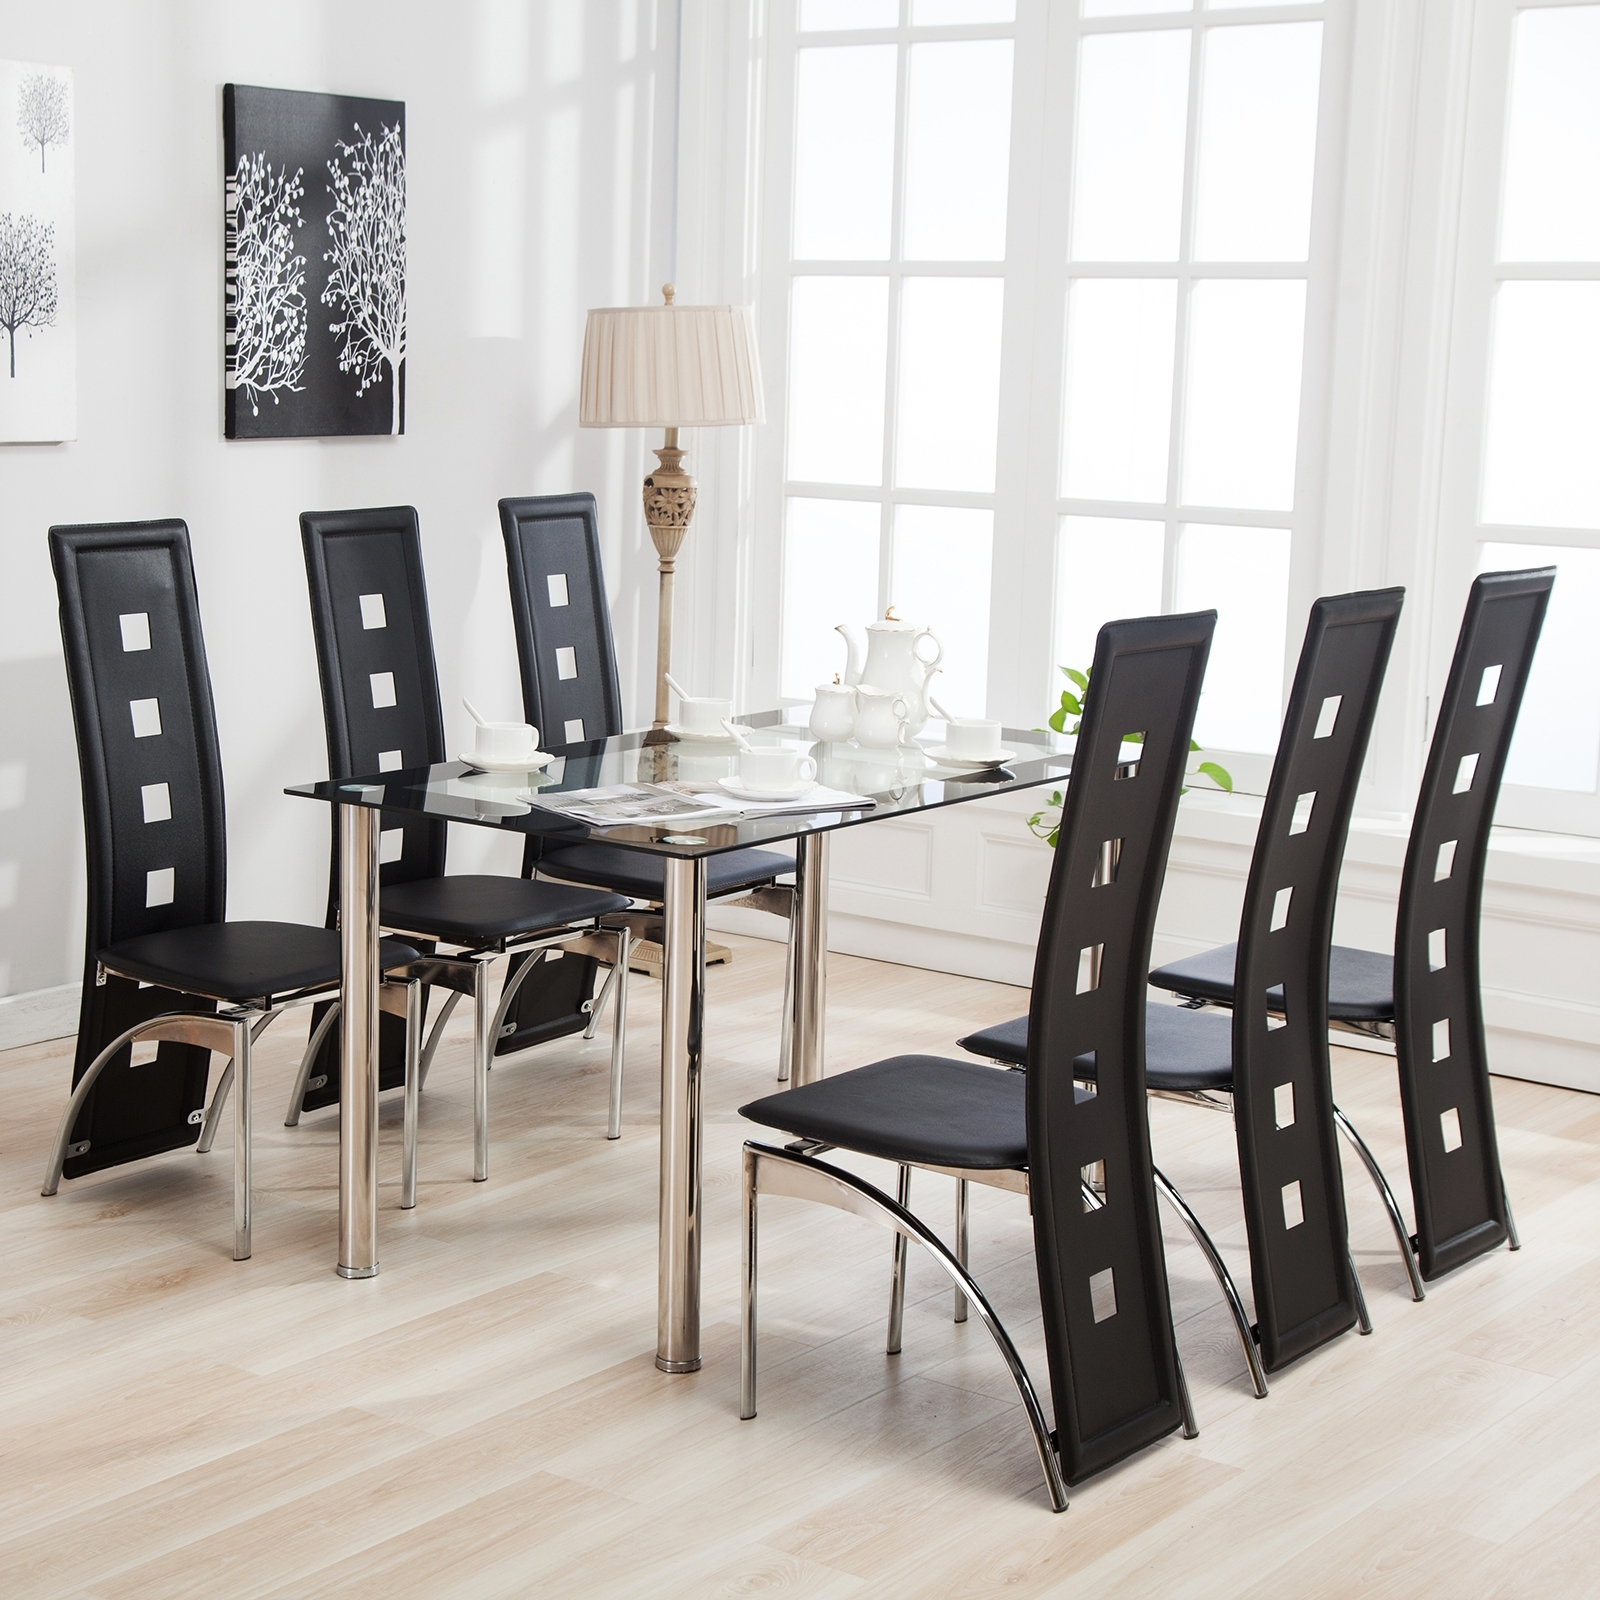 Cheap Glass Dining Tables And 6 Chairs With Regard To Well Known Mecor 7Pcs Dining Table Set 6 Chairs Glass Metal Kitchen Room (View 15 of 25)